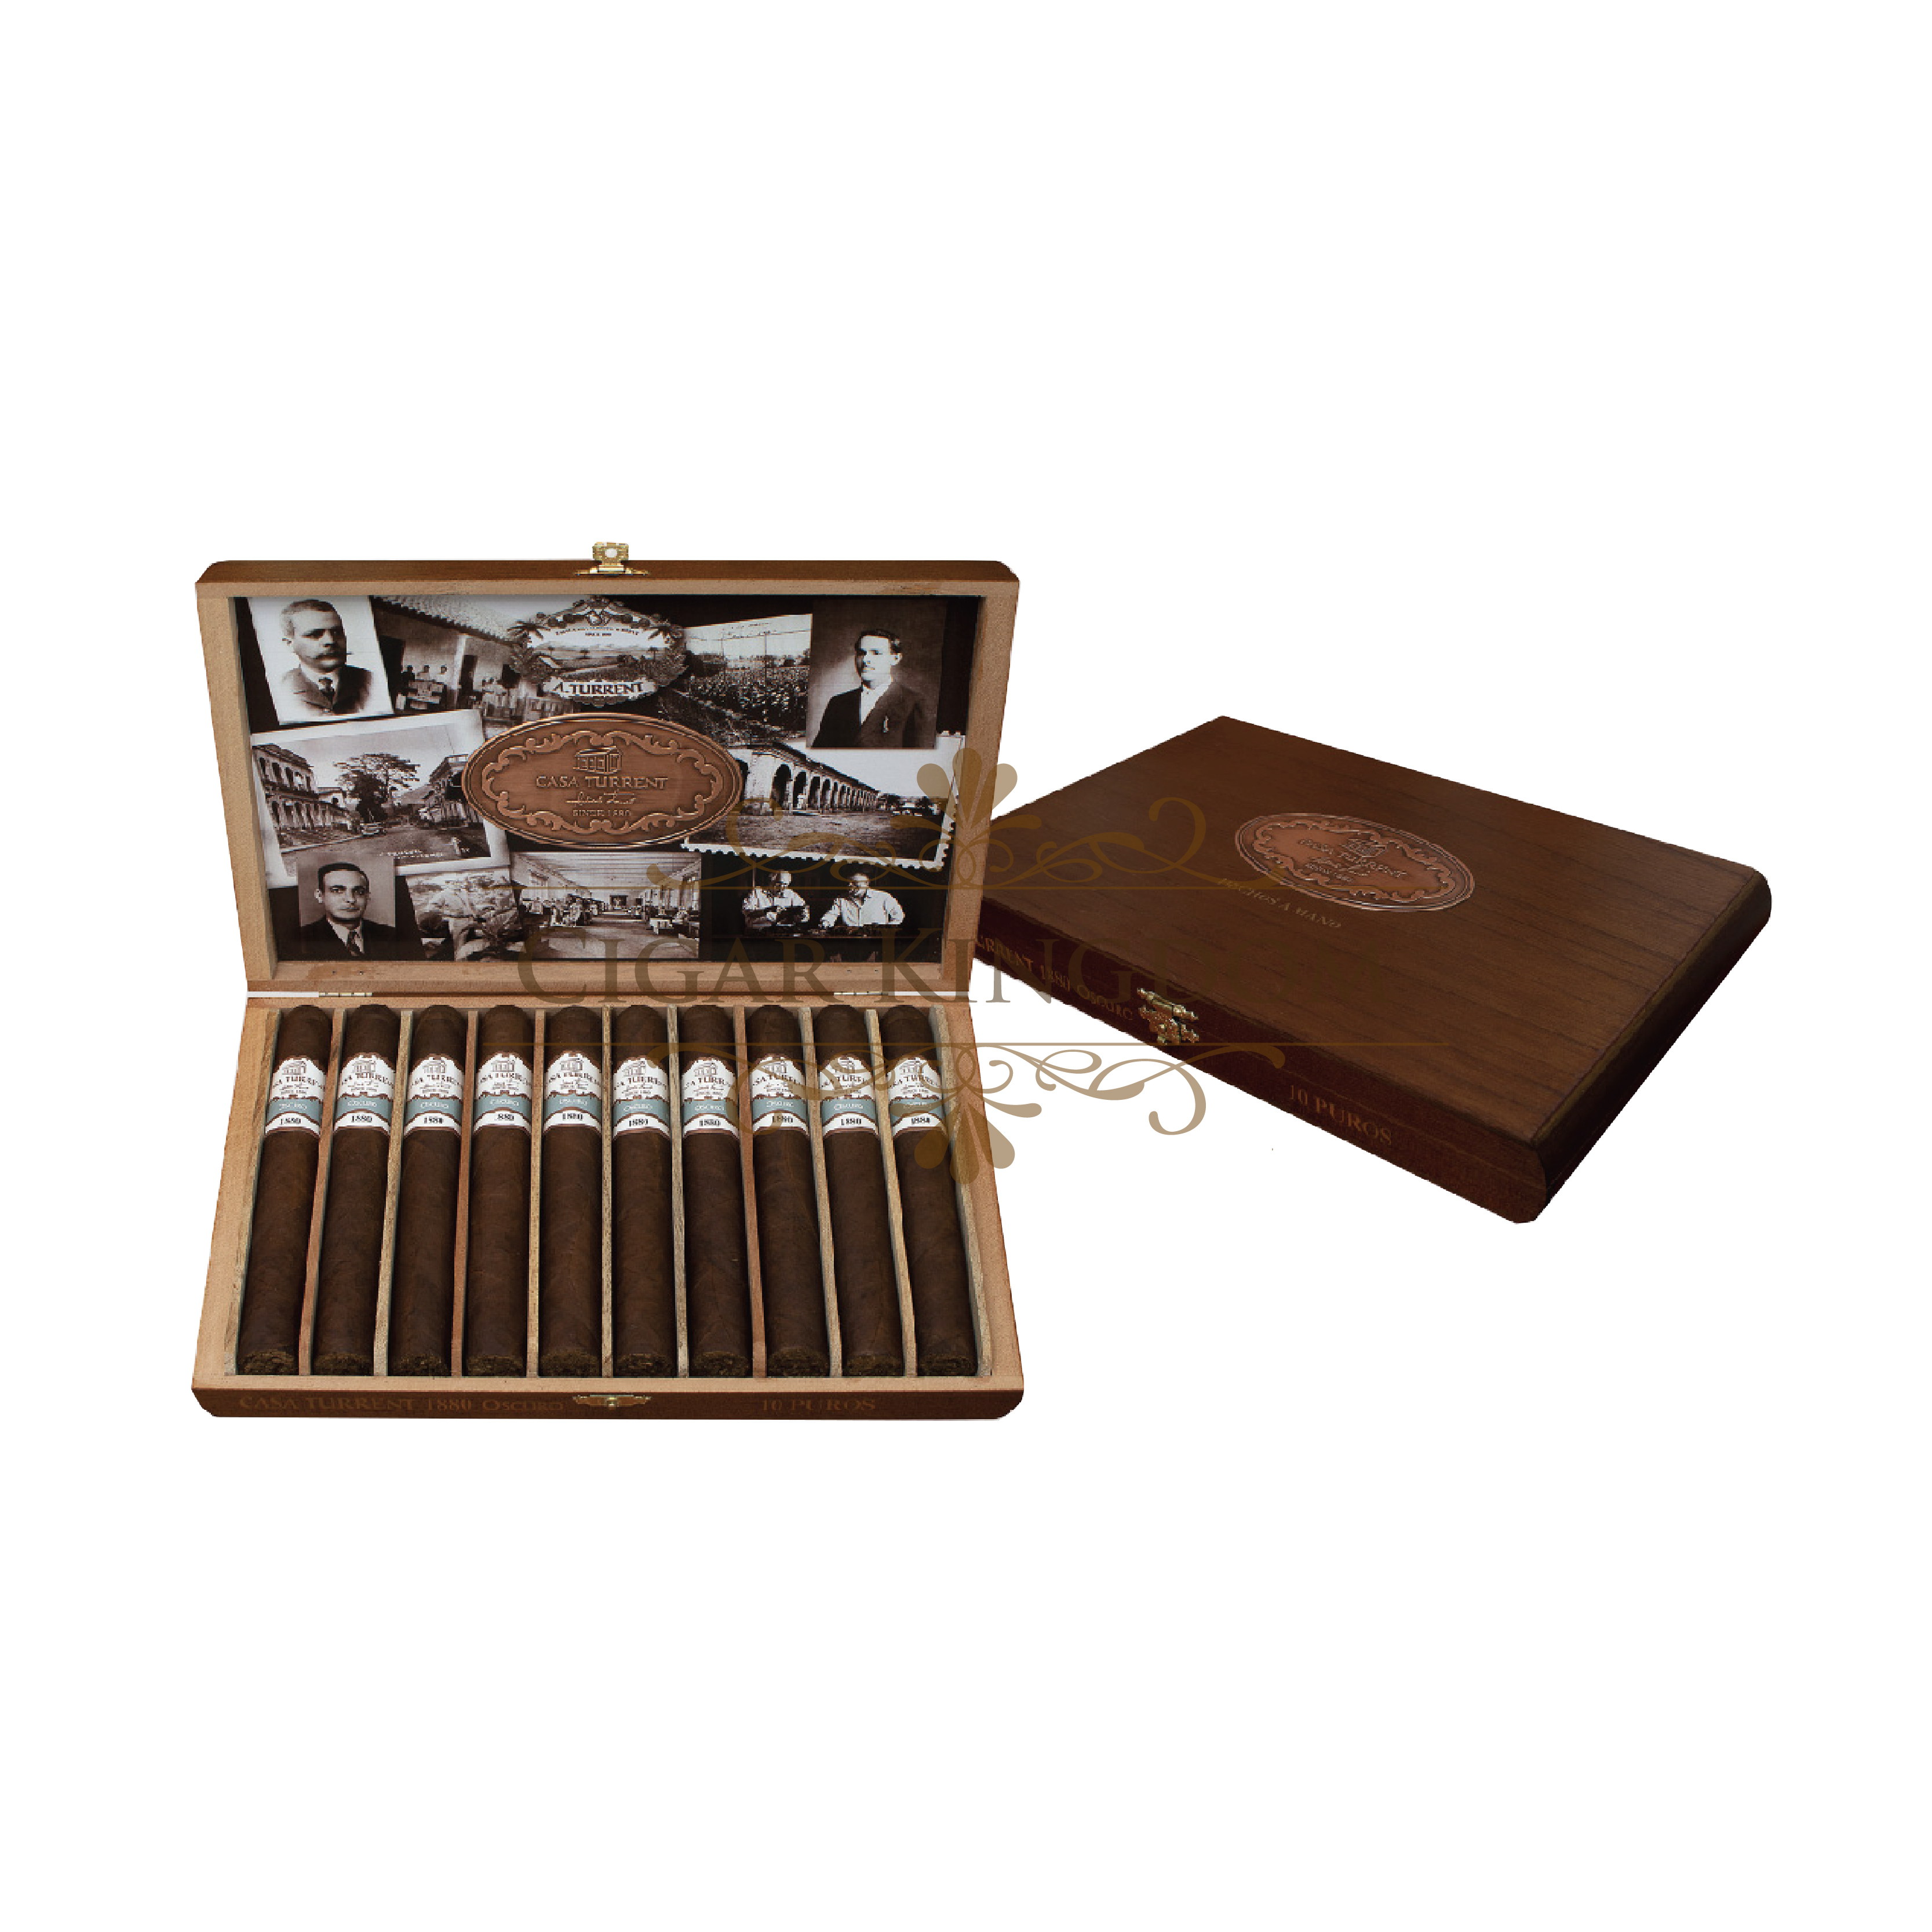 Casa Turrent 1880 Oscuro (Pack of 10s)